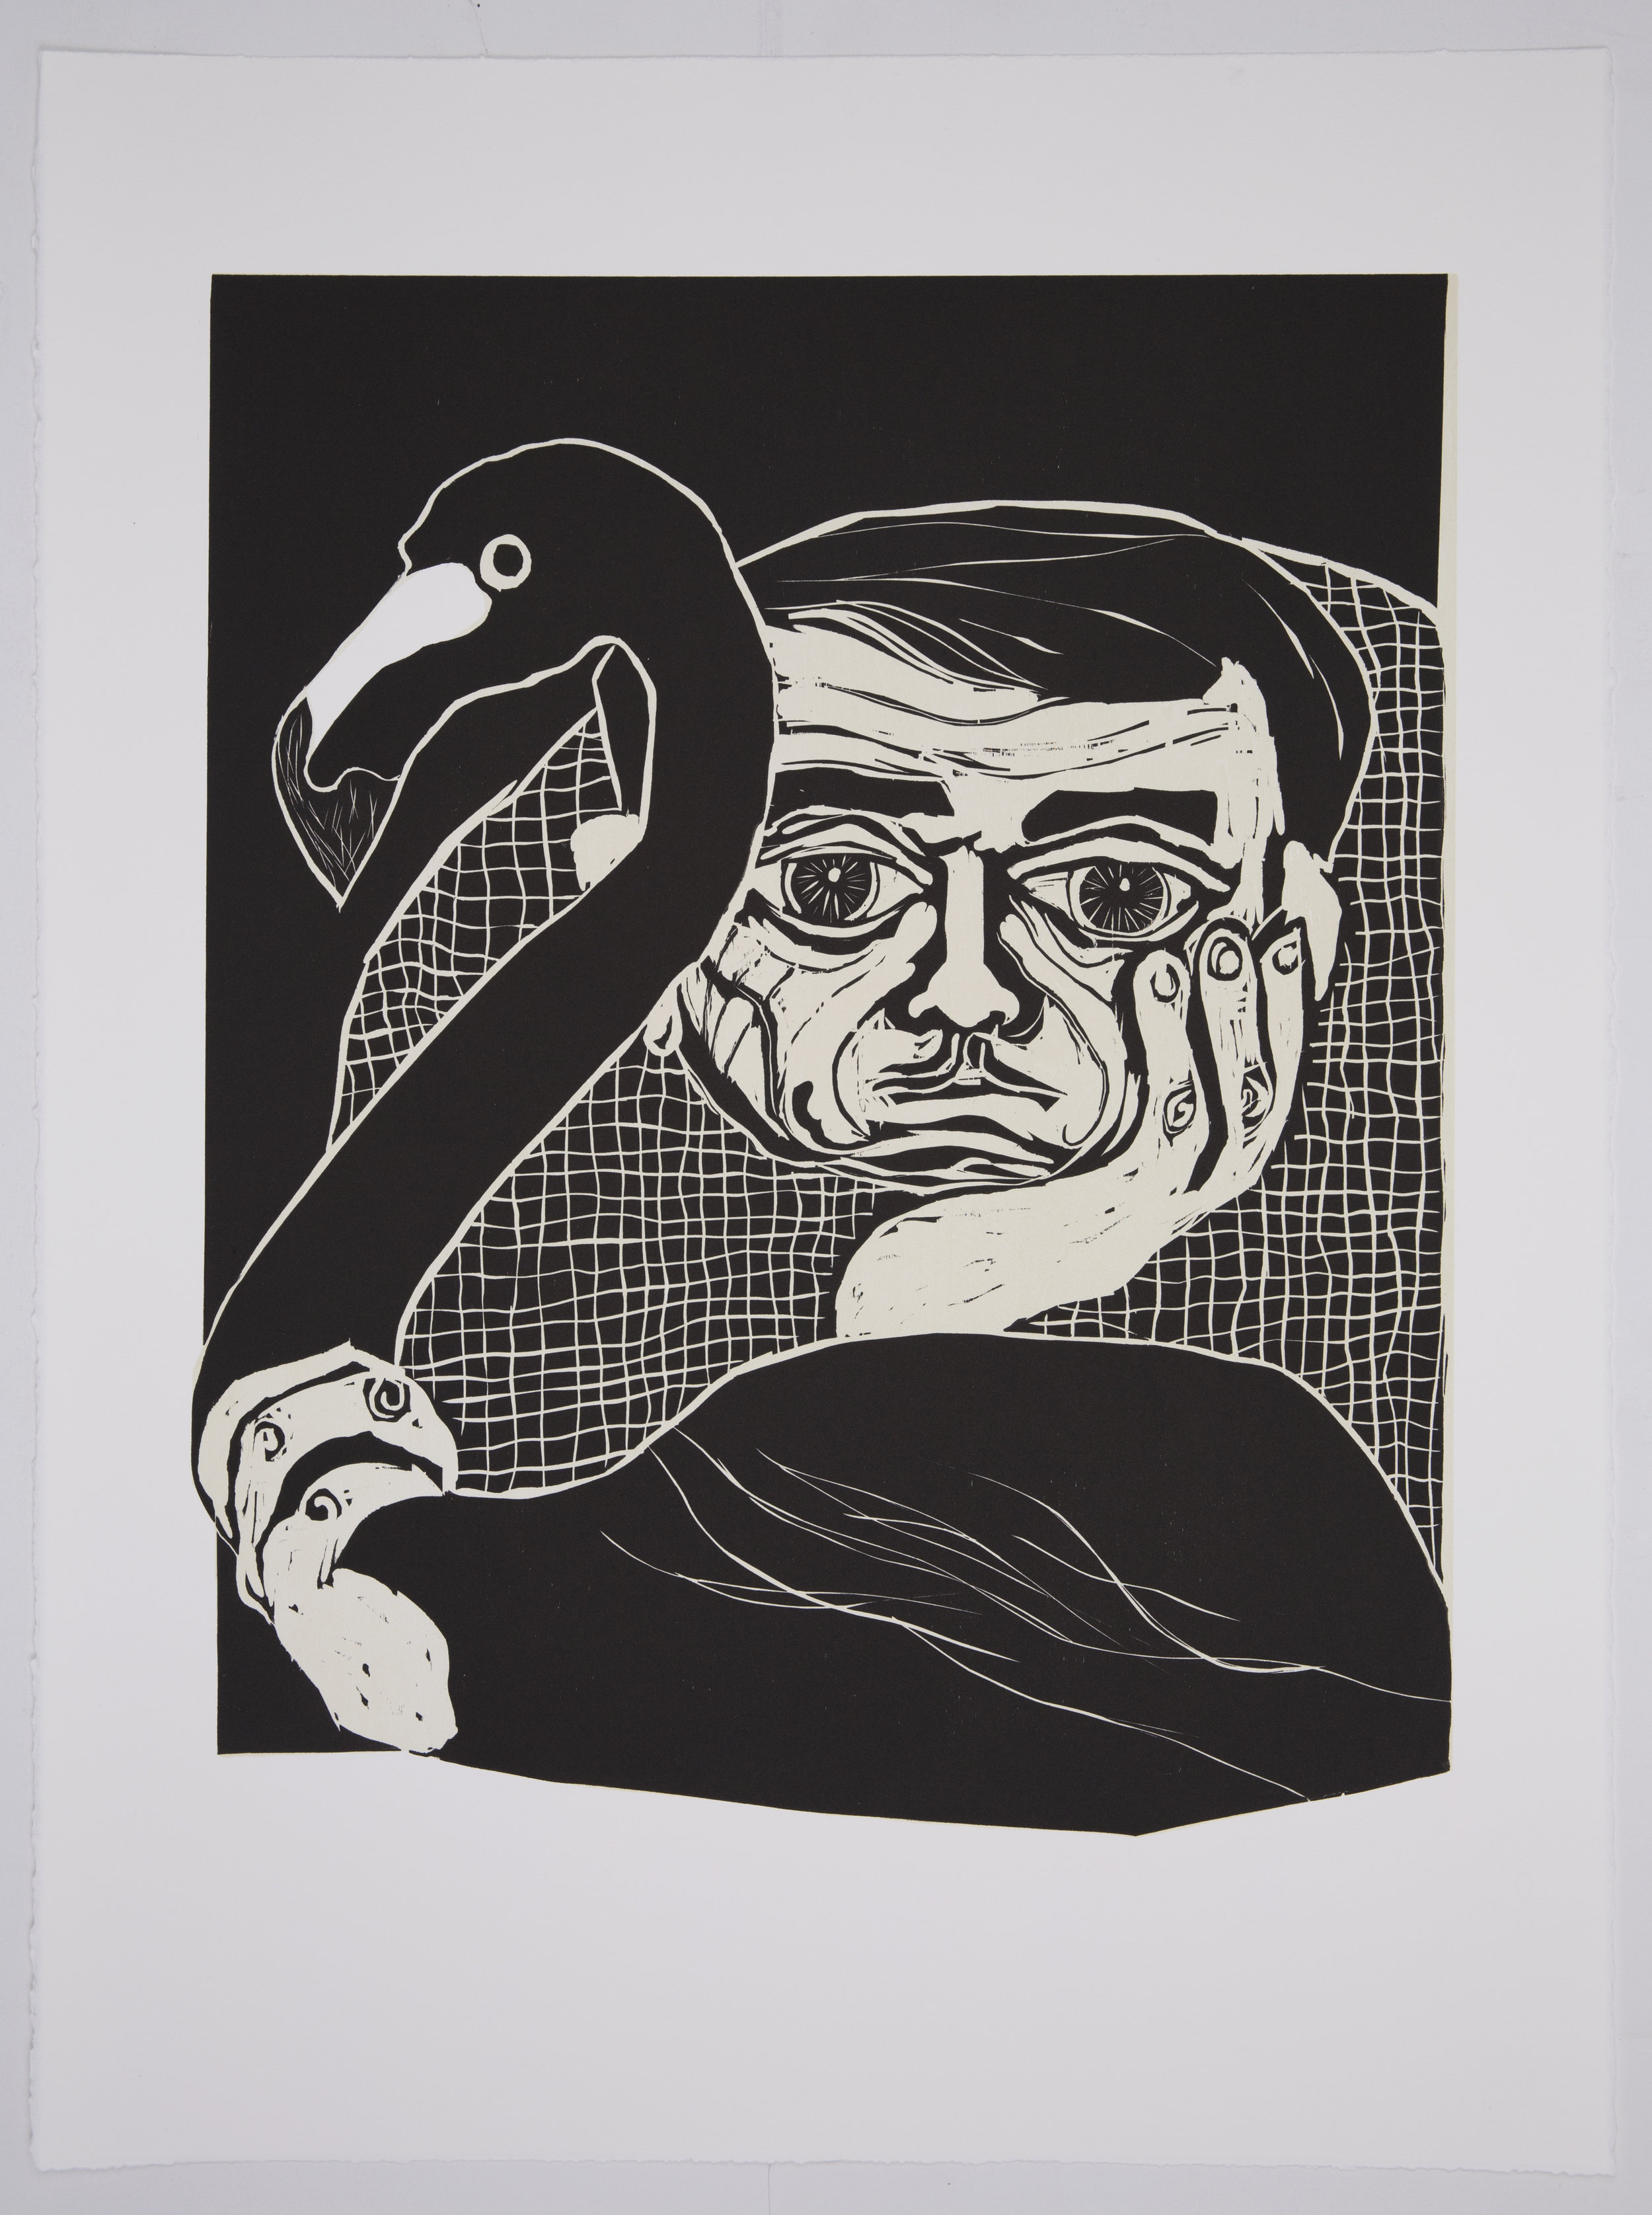 LACRIMINAL II  2016 Woodcut Image Size: 24 x 18 inches Paper Size: 30 x 22 inches Edition of 10